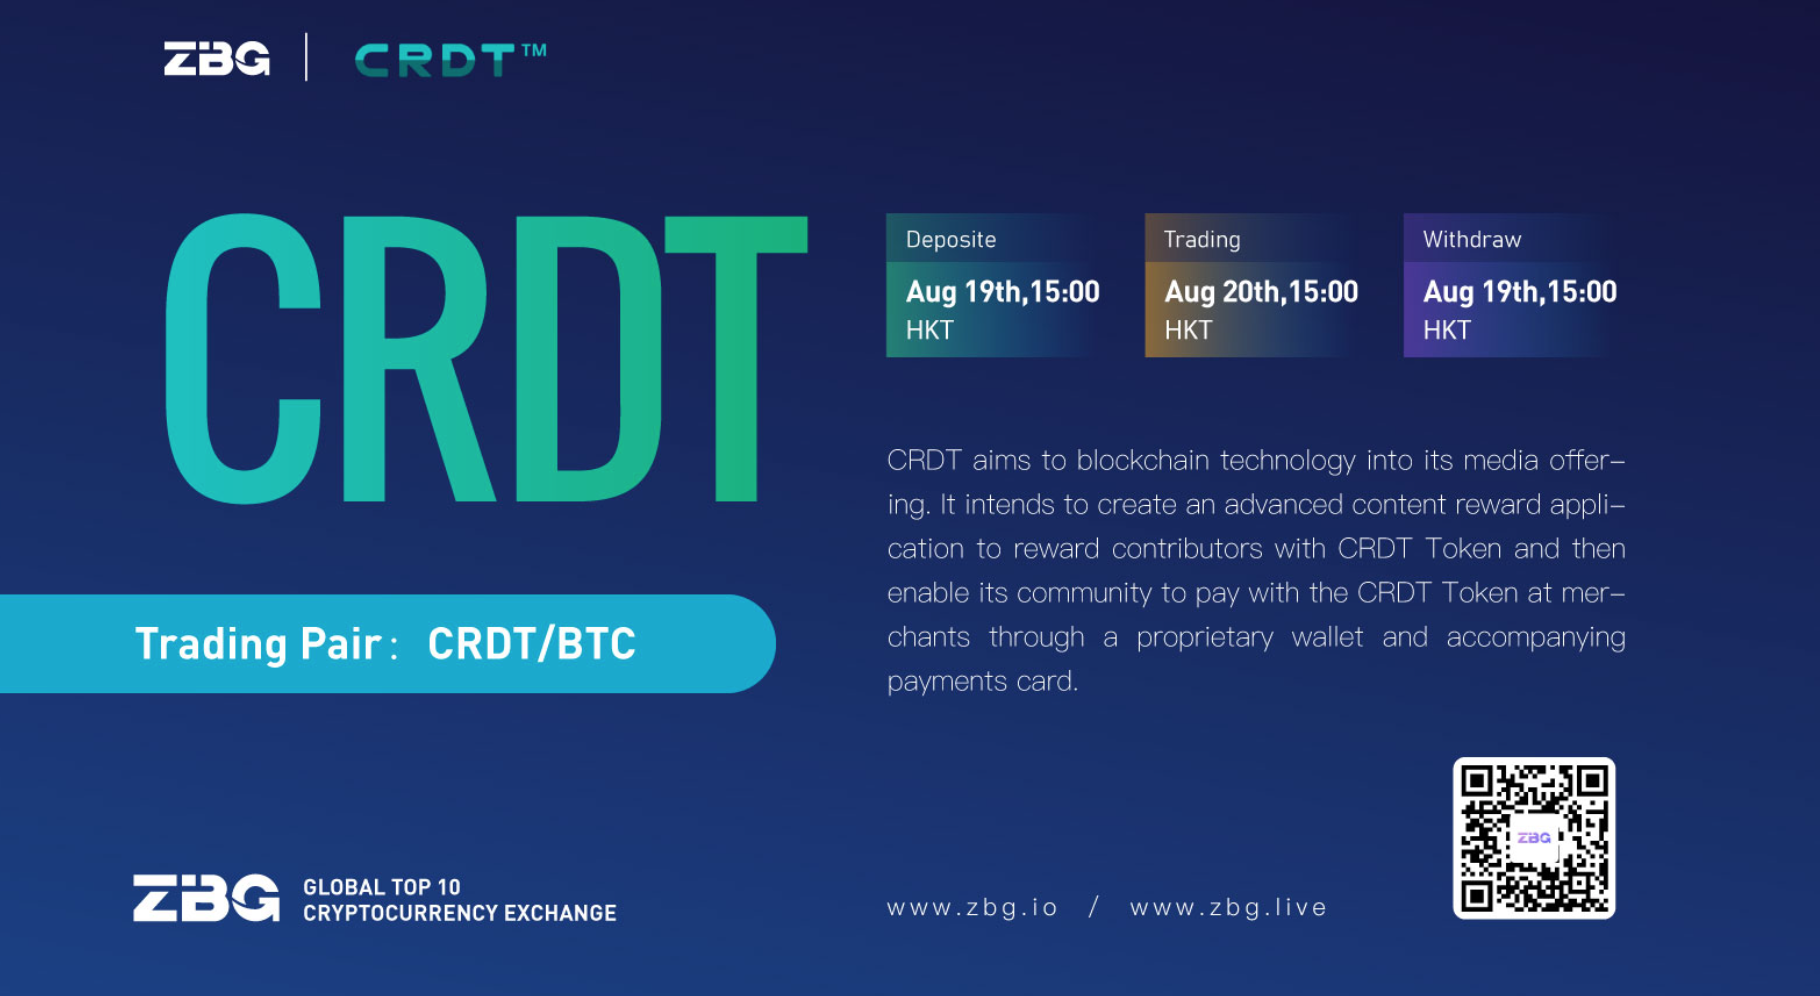 CRDT has just been listed on the ZBG.com exchange!